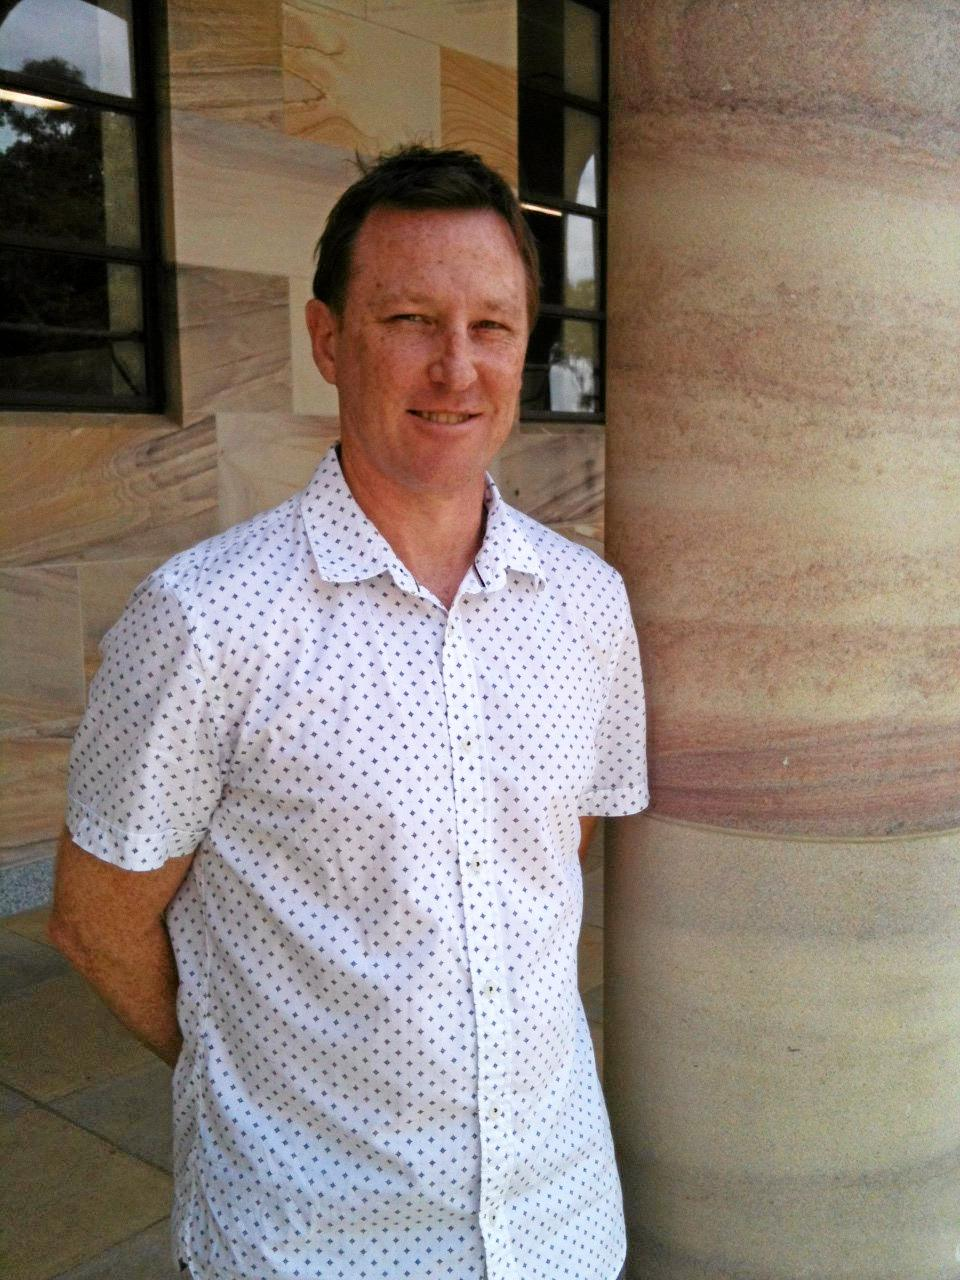 POLITICAL INSIGHTS: Political commentator and UQ lecturer Dr Chris Salisbury provided analysis on the closely contested seat of Capricornia.